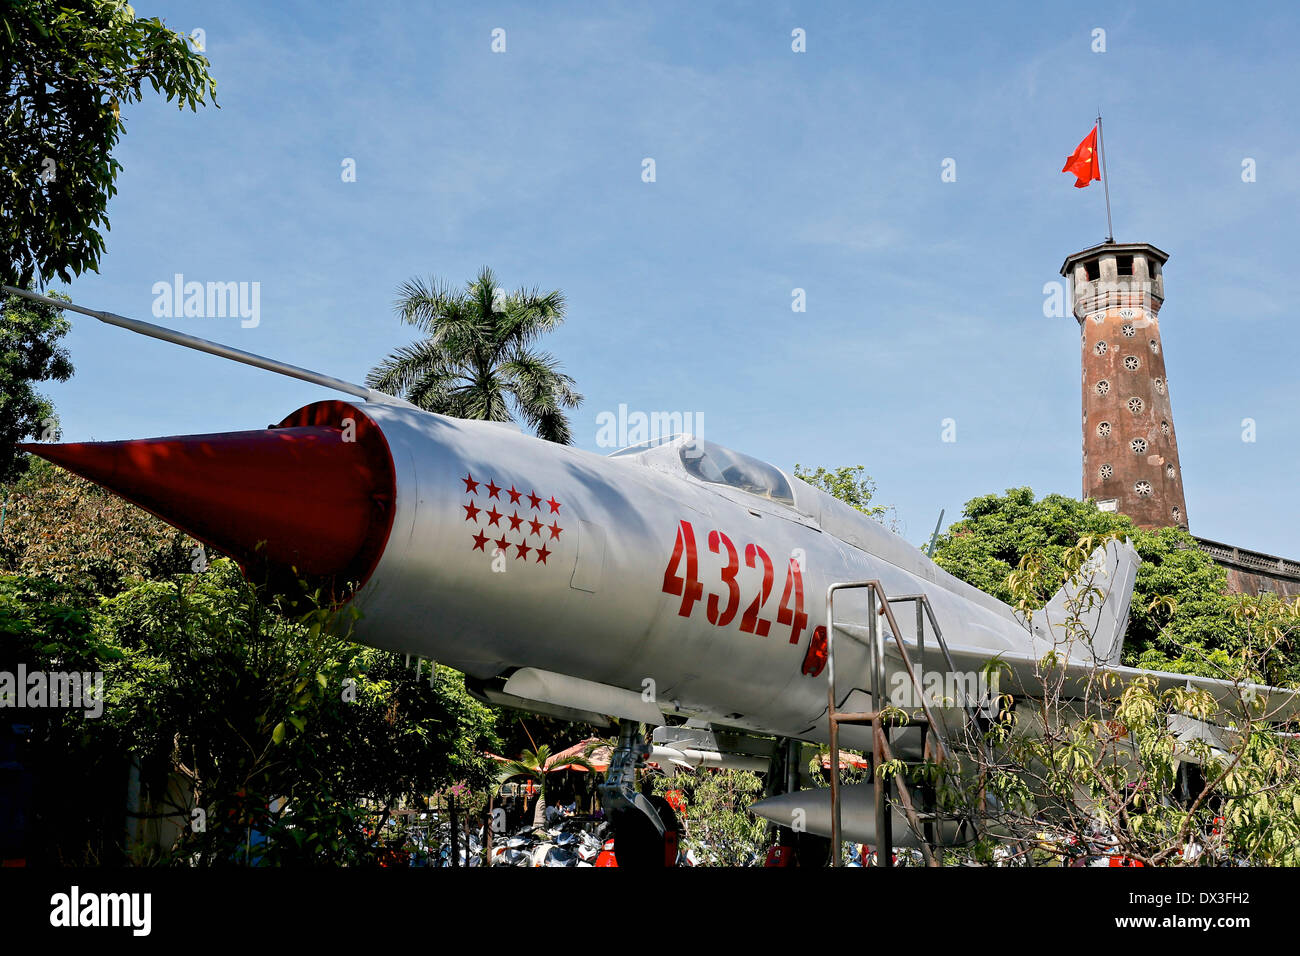 Vietnamese Air Force Mig 21  in front of the  hexagonal tower at the Vietnam Military History Museum, Vietnam, South - Stock Image